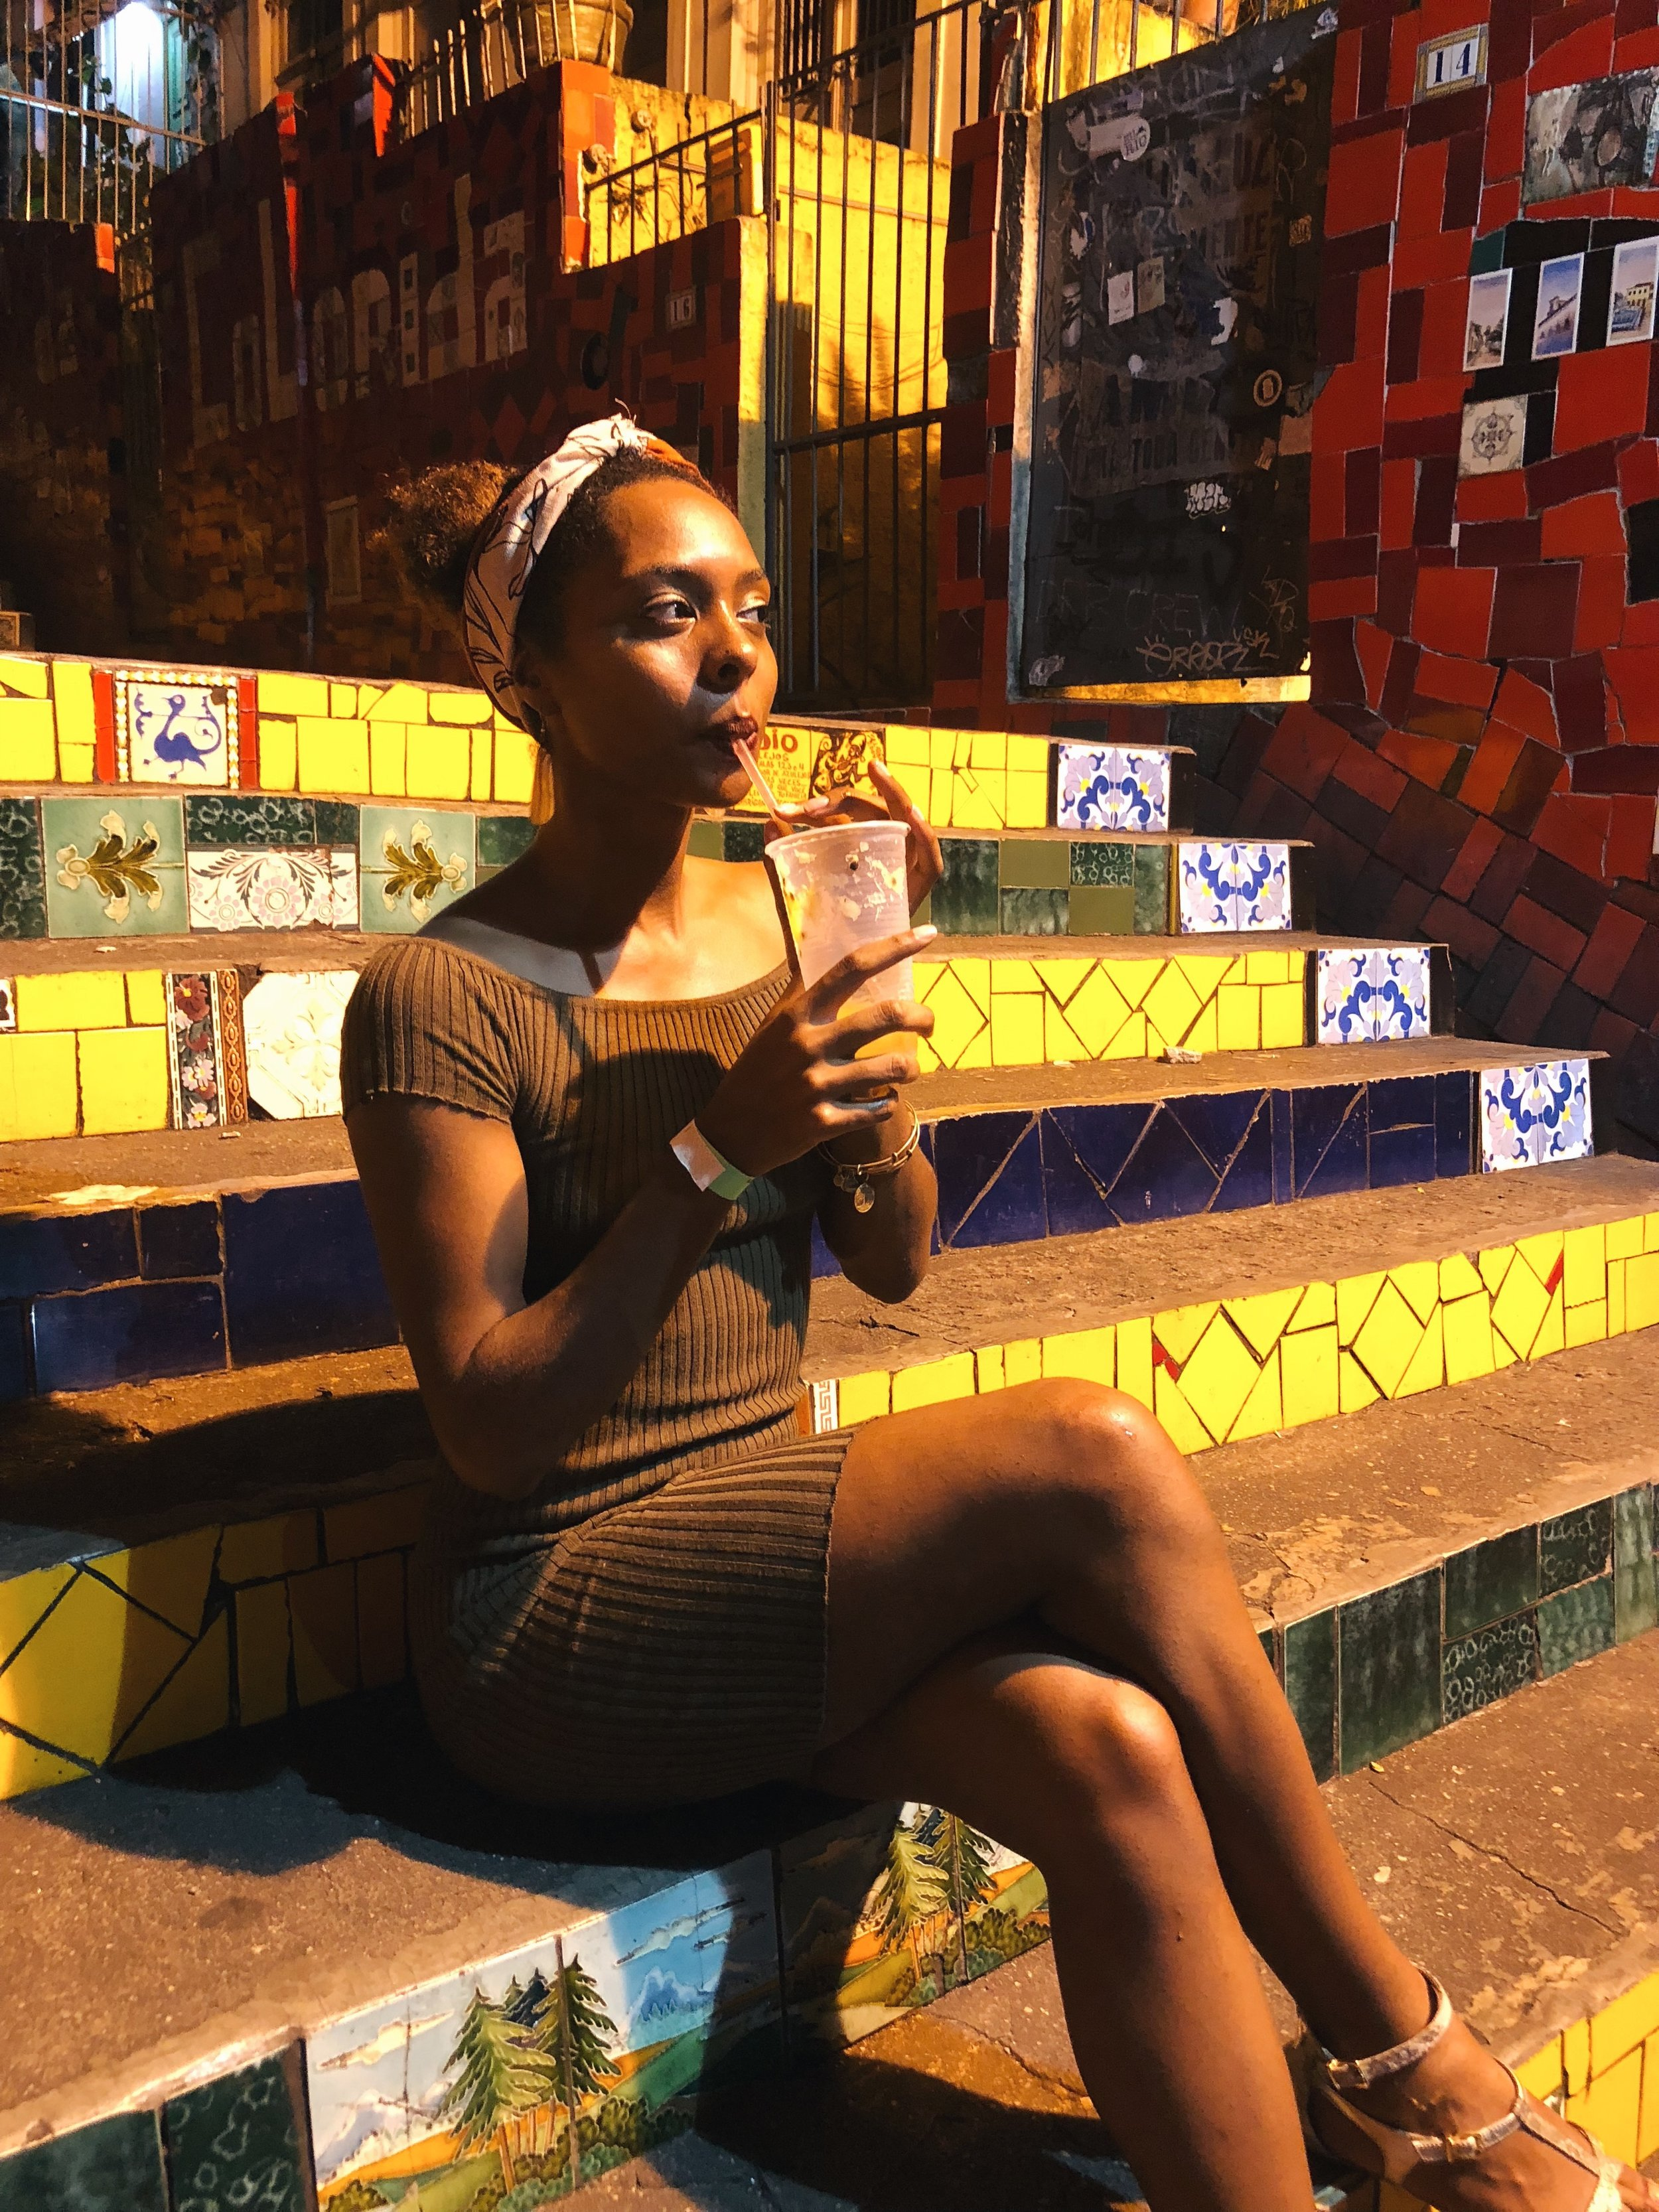 Me sipping my Caipirihna minding my business while enjoying a tourist-free photoshoot in the evening!